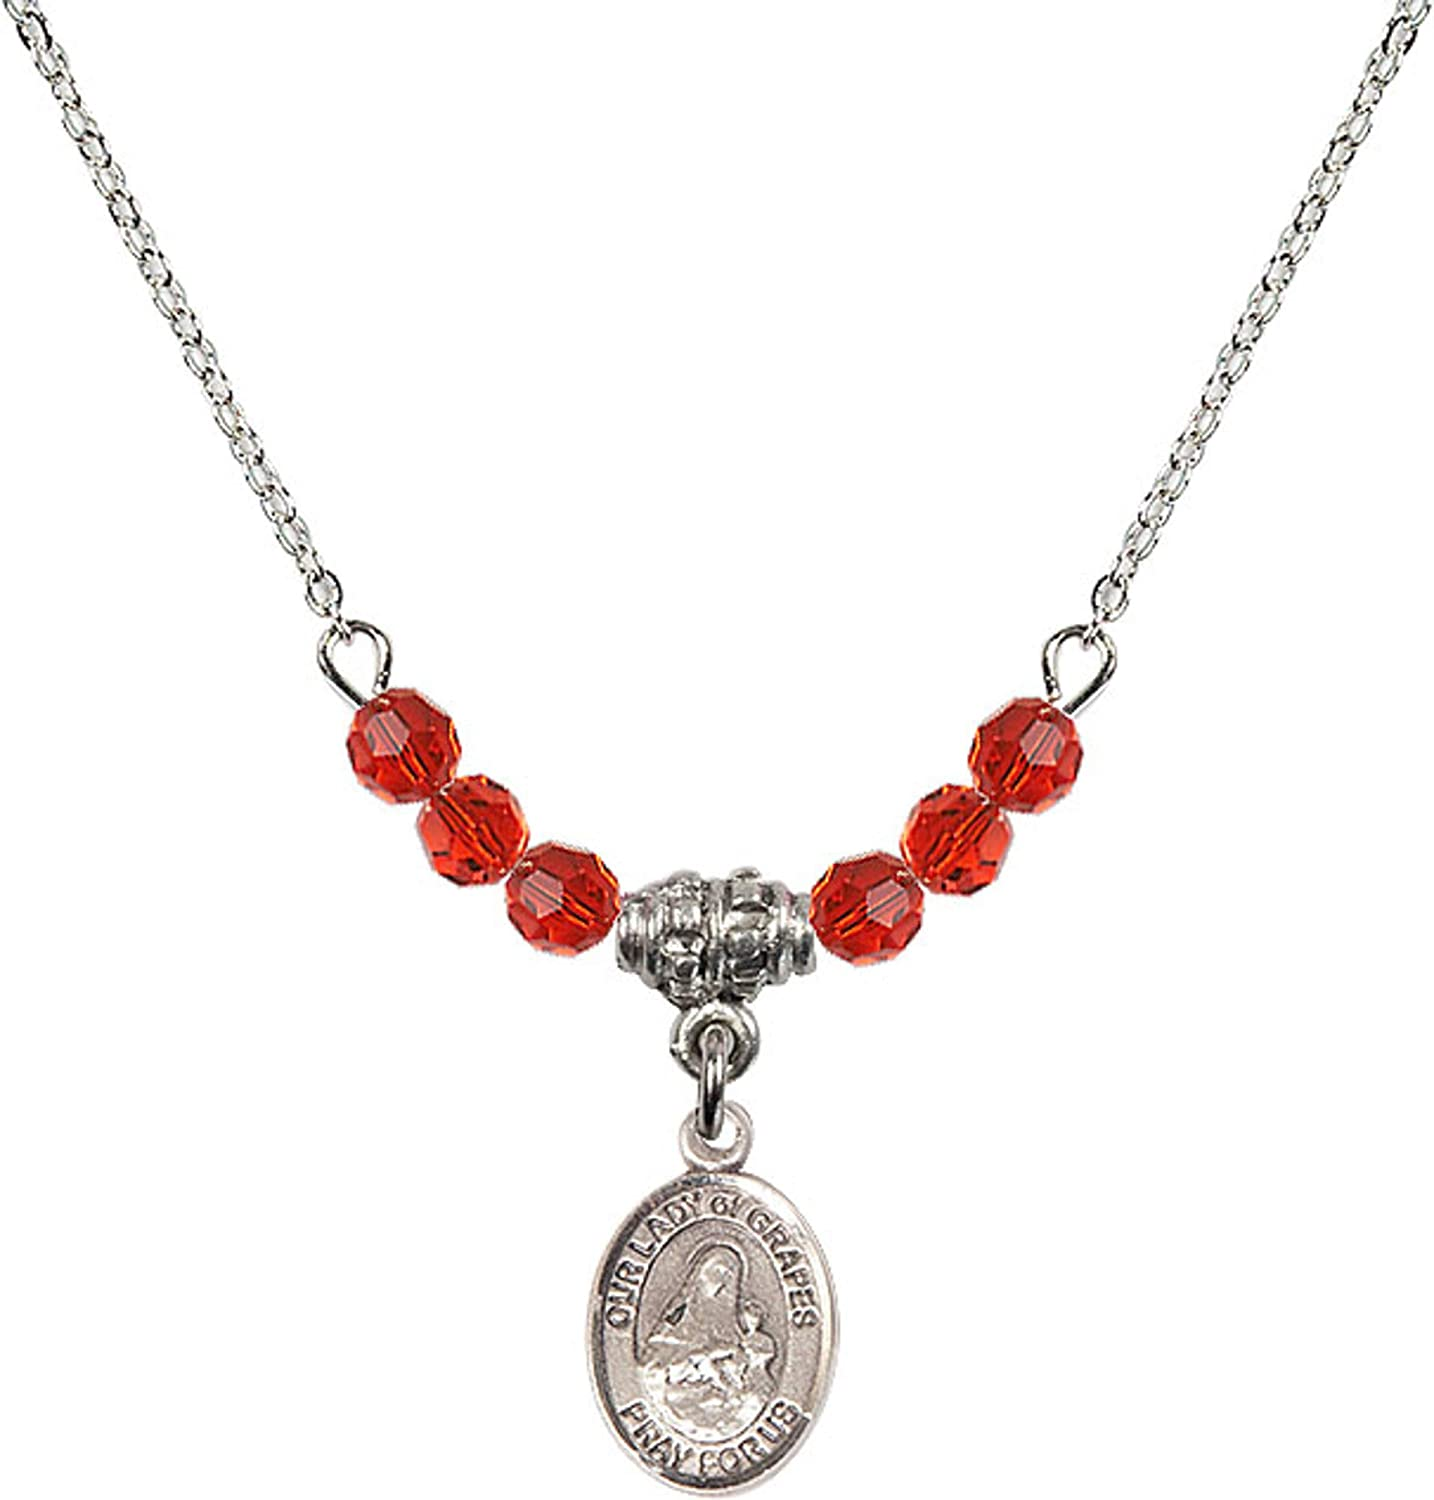 Bonyak Jewelry 18 Inch Rhodium Plated Necklace w// 4mm Red July Birth Month Stone Beads and Our Lady of Grapes Charm